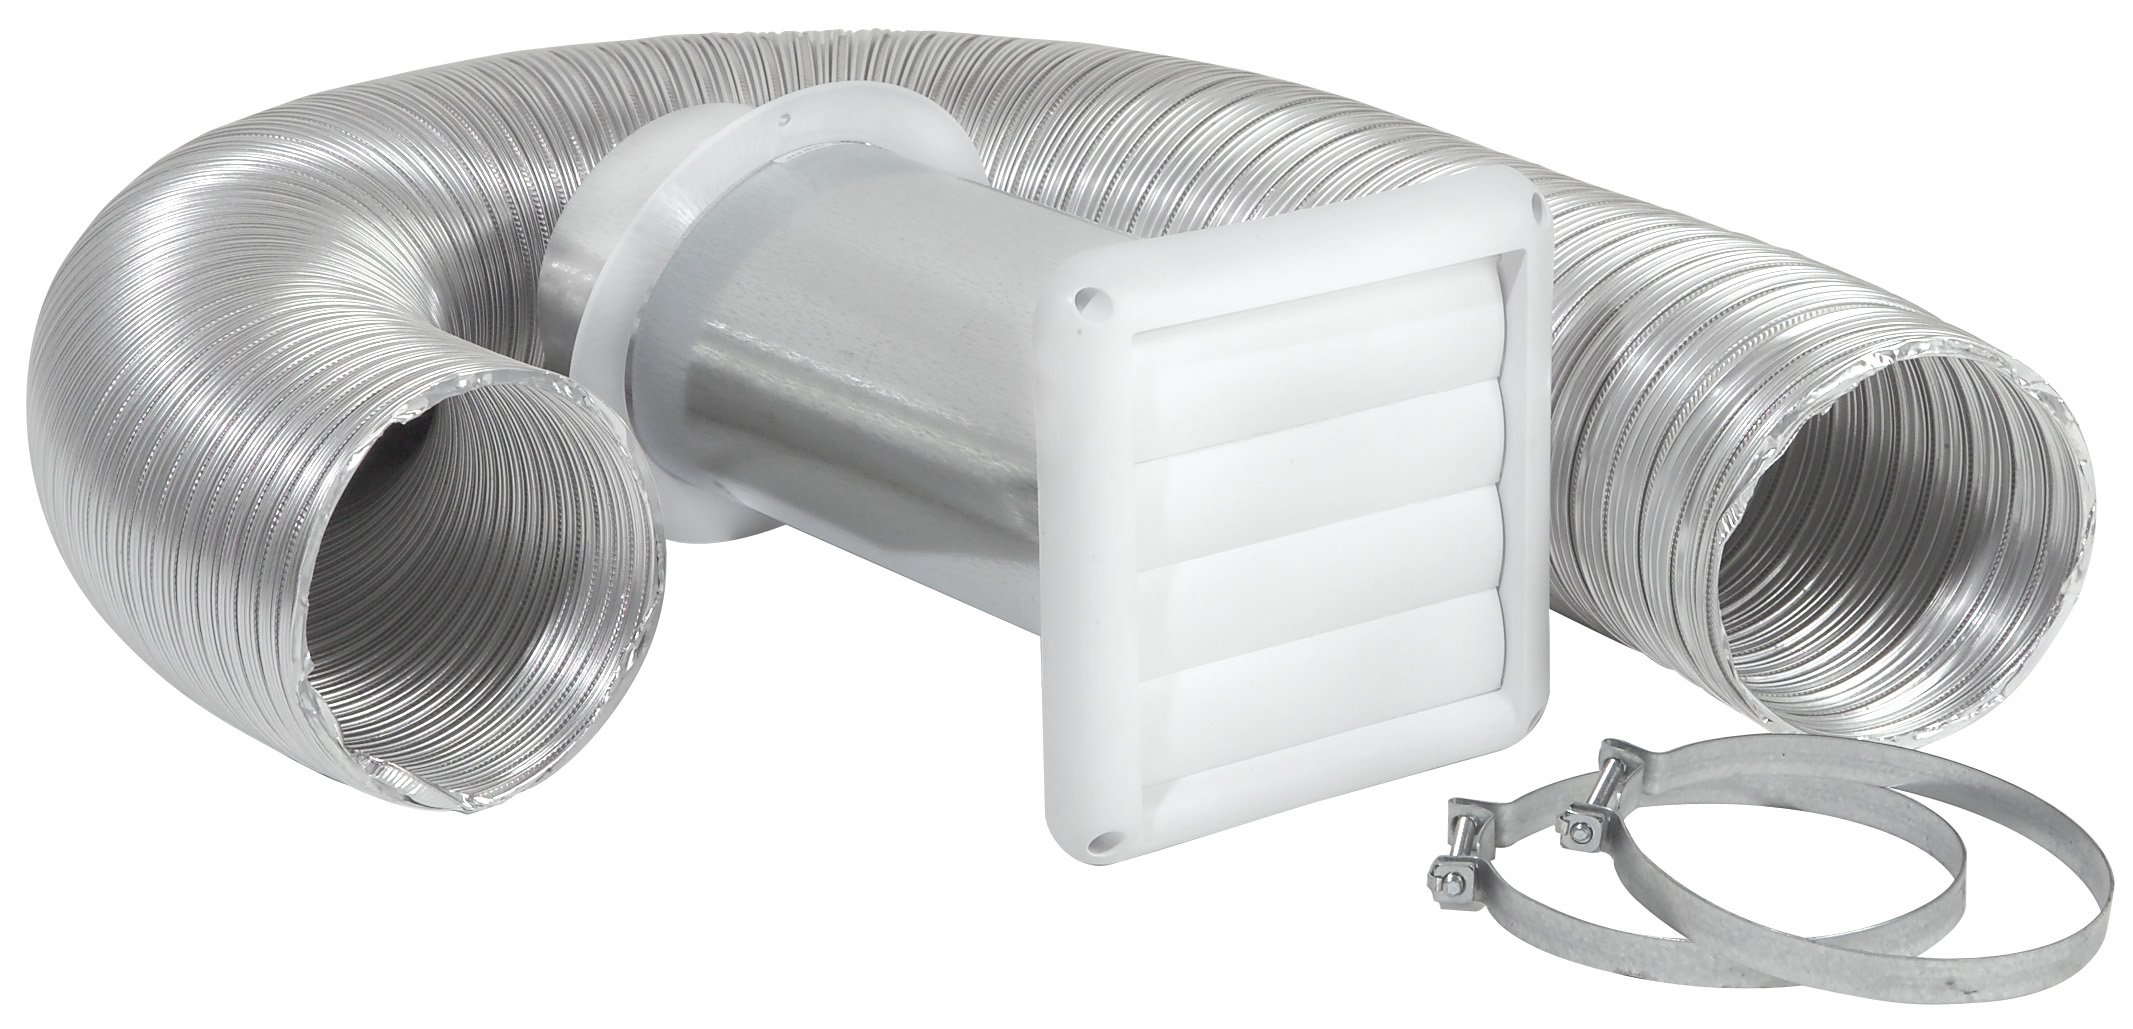 Imperial 4'' x 8-Foot Louvered Vent with Flexible Aluminum Ducting, Dryer Vent Kit, White, VT0156